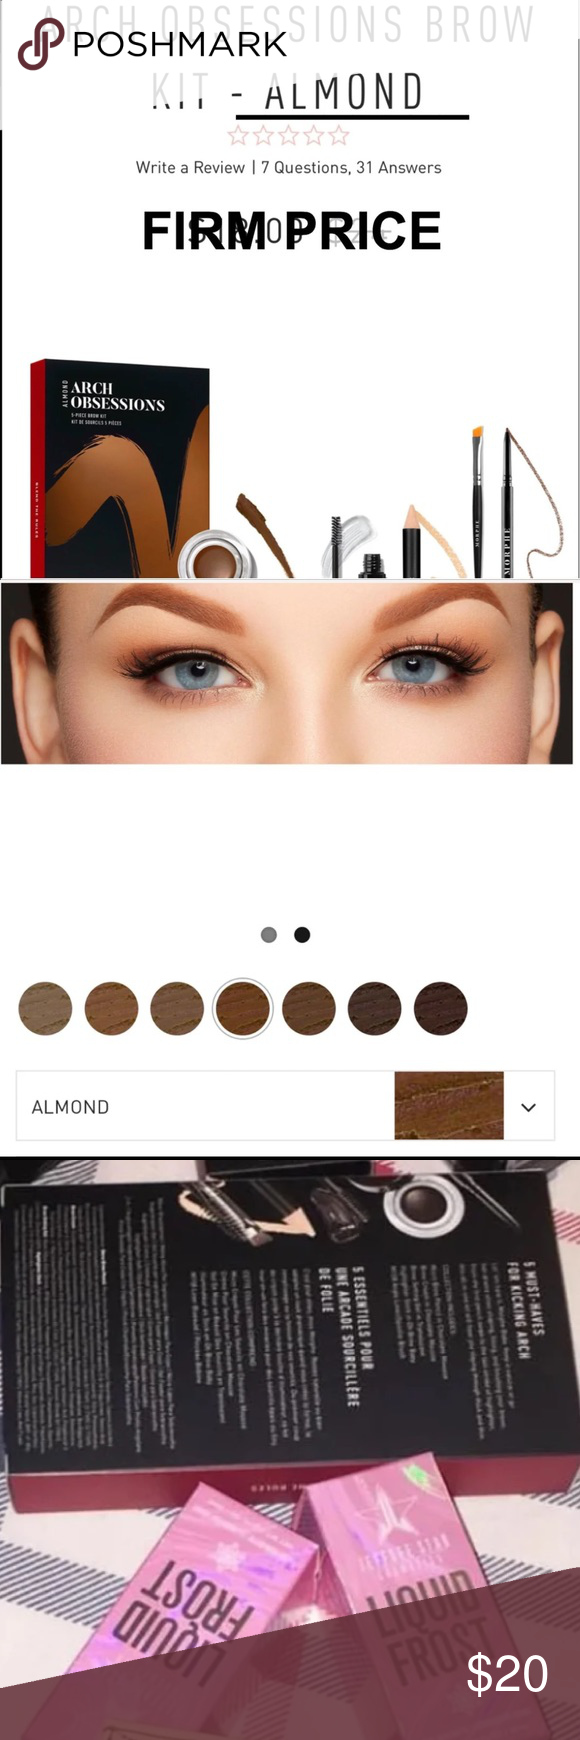 Morphe 5 Piece Brow Set In Almond No Lowest No Trades No Questions Brand New Never Used Set Includes Angled Bro Brow Gel Brow Brush Things To Sell @anastasiabeverlyhills brow wiz in dark brown eyeshadows: morphe 5 piece brow set in almond no